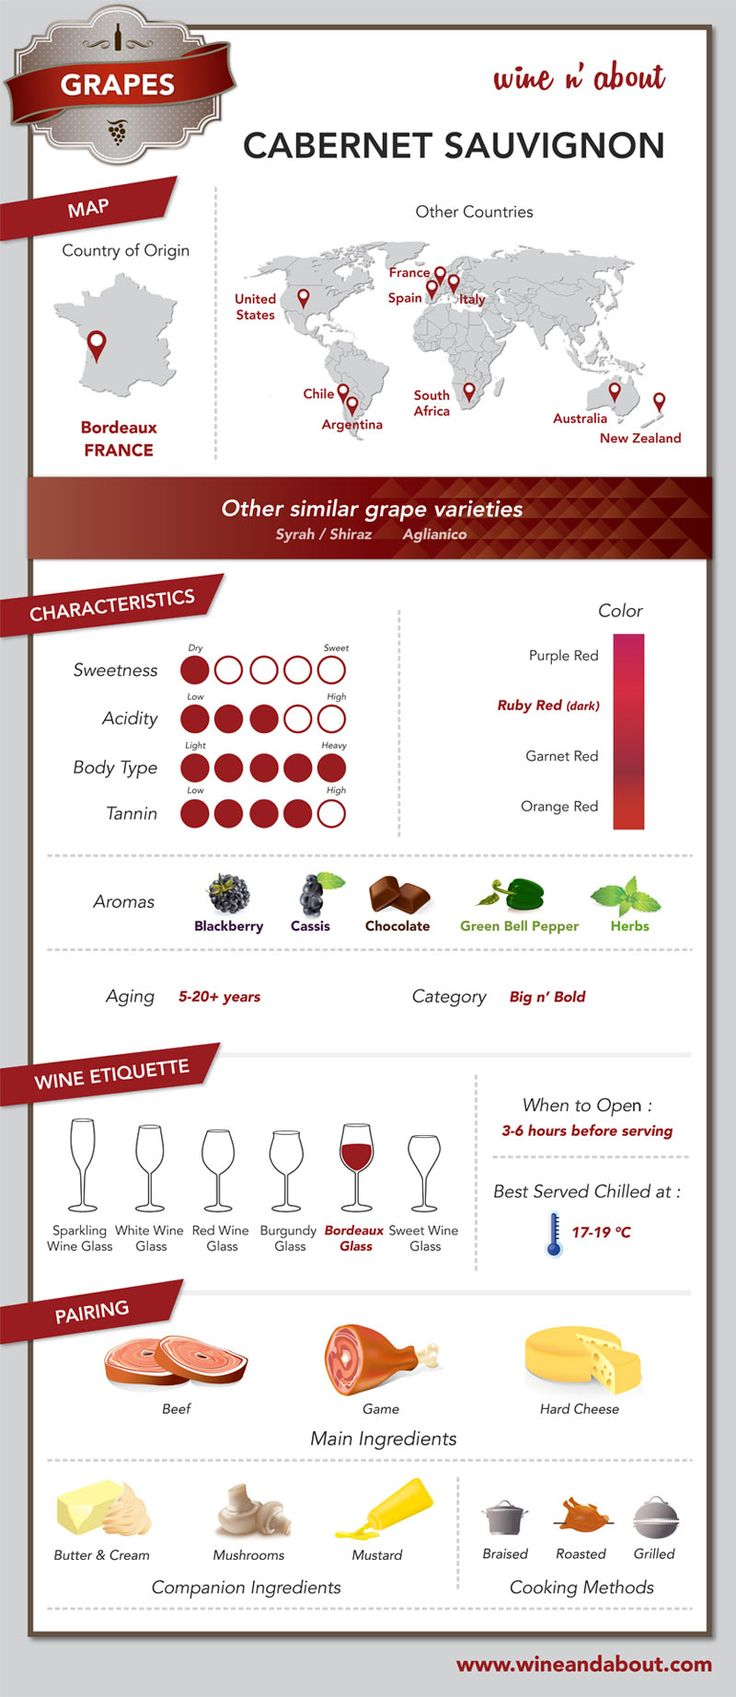 Learn everything you ever wanted to know about Cabernet Sauvignon. #Wine